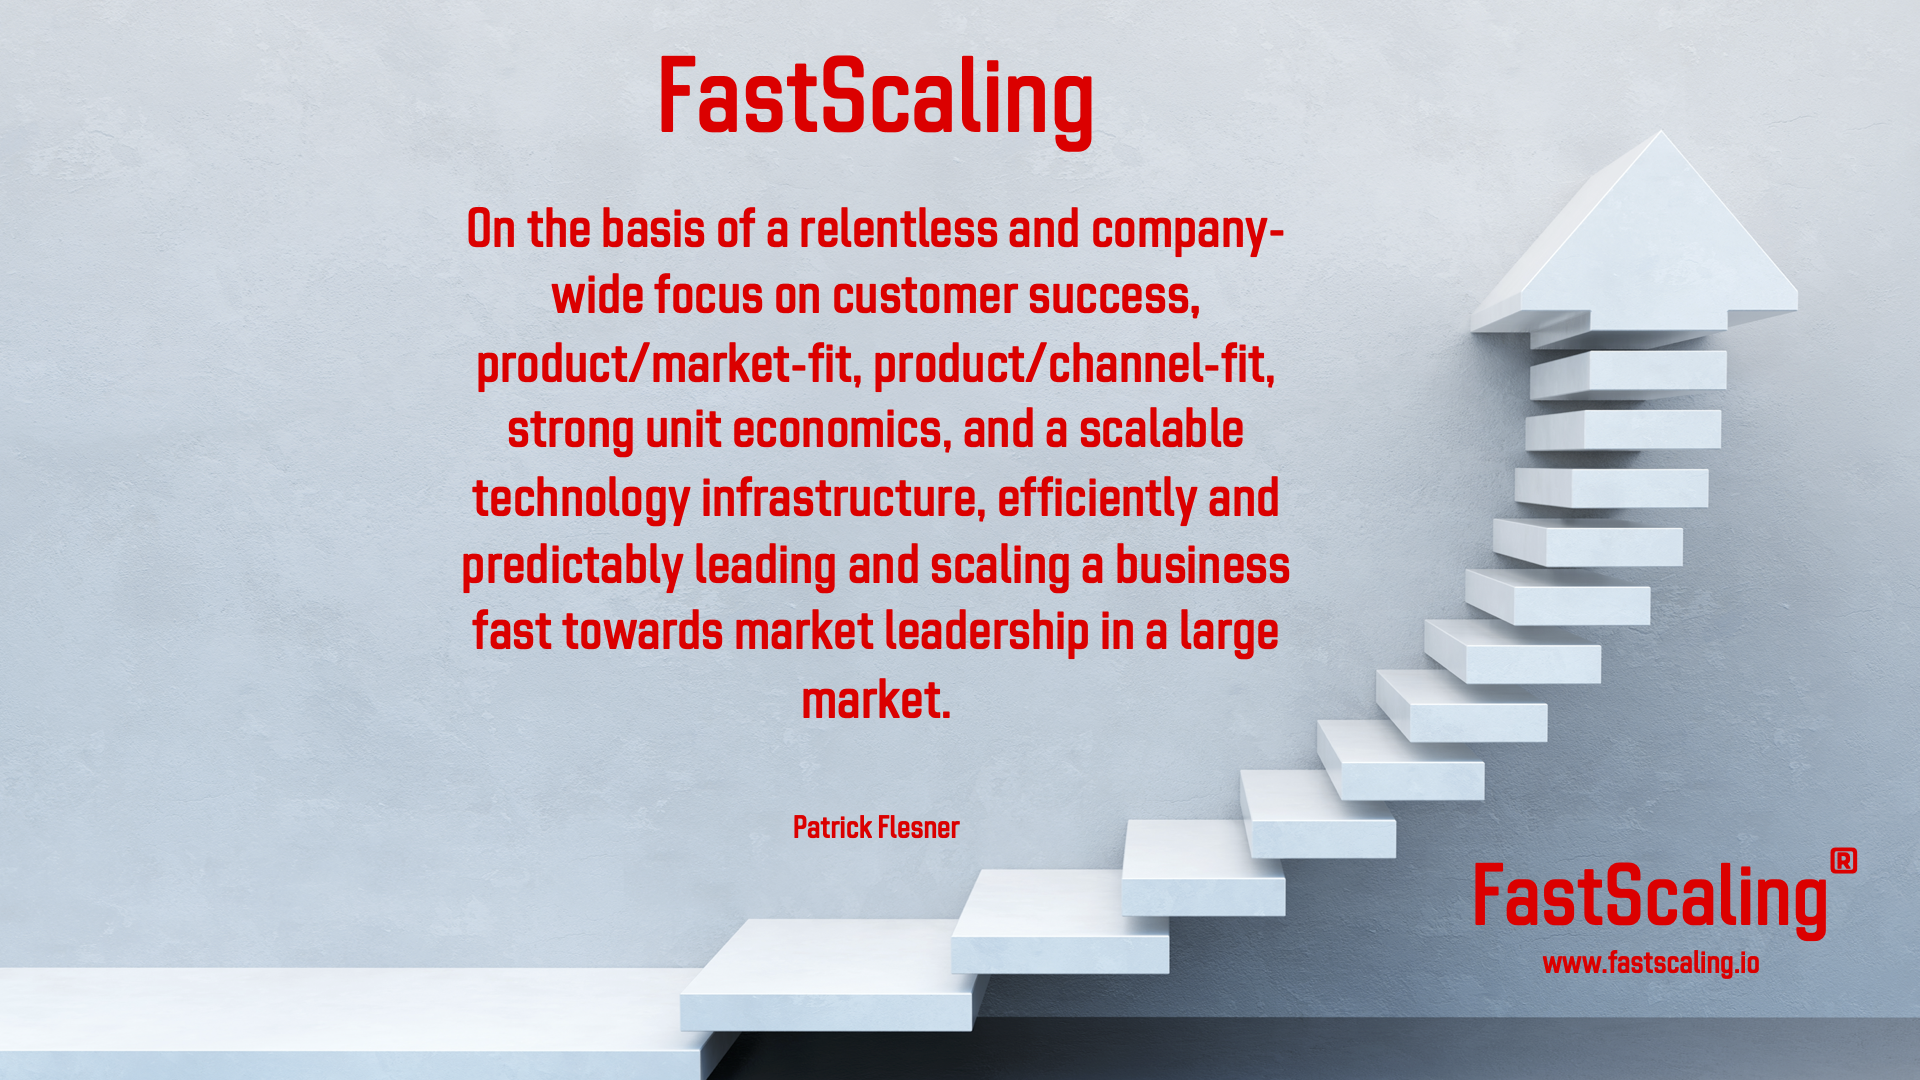 FastScaling - The Definition